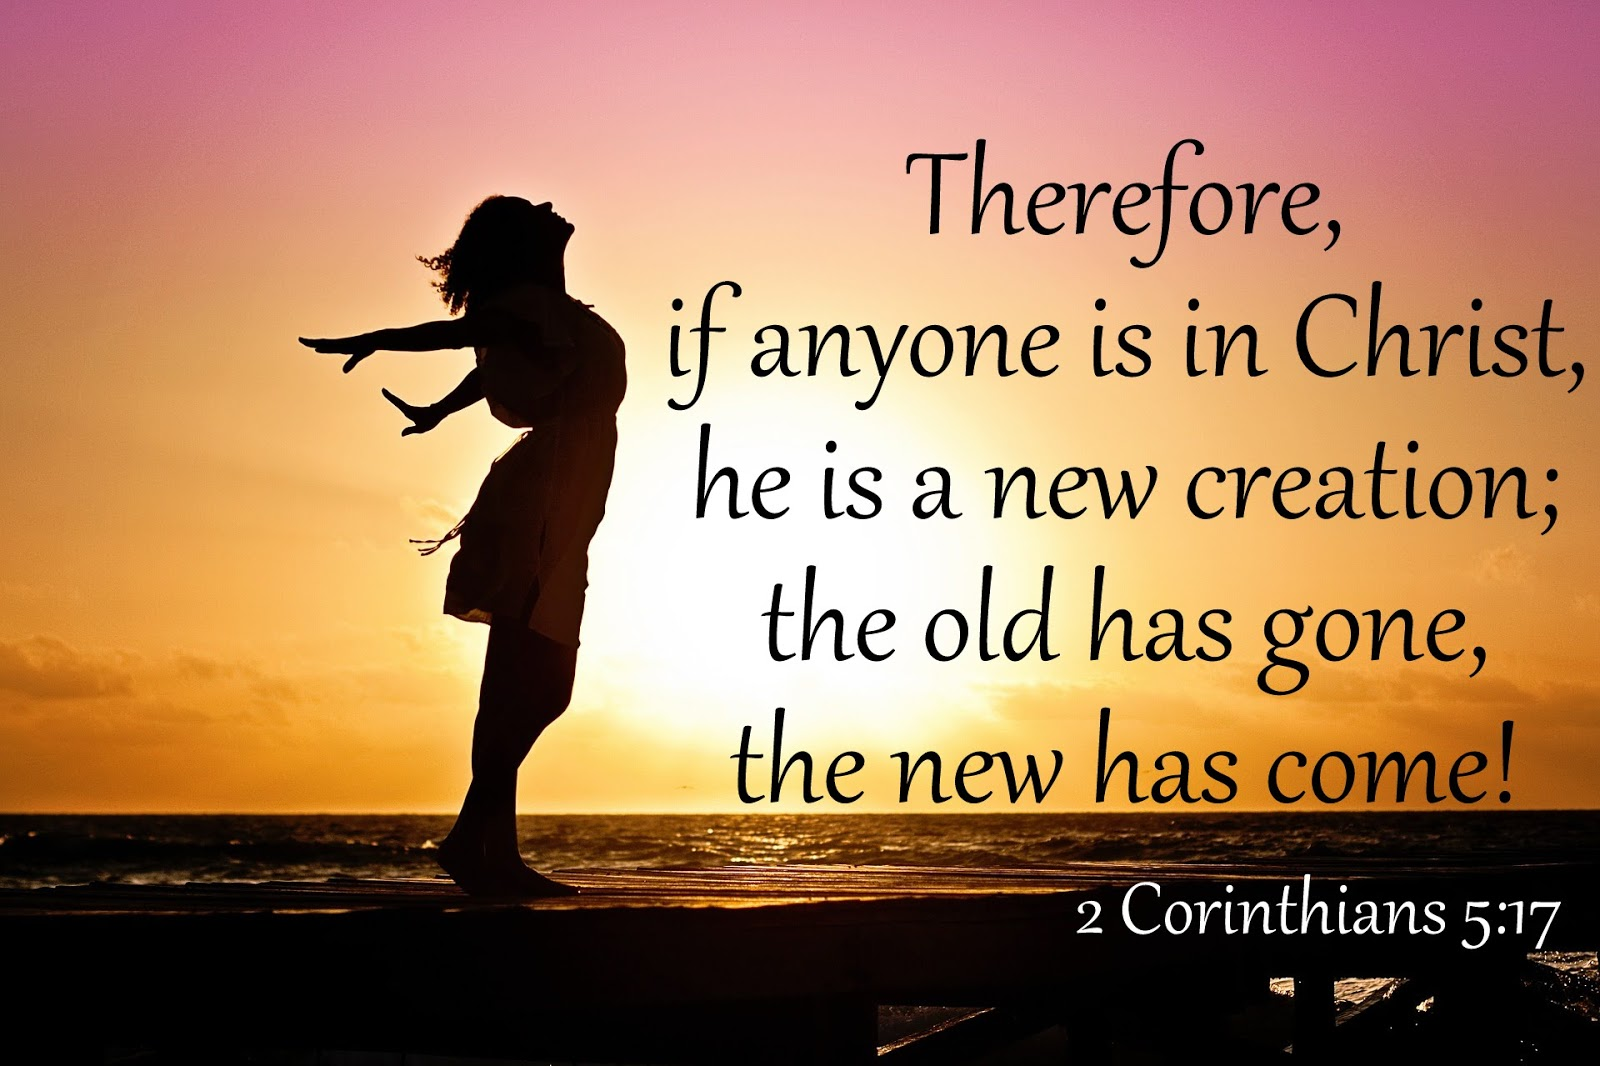 The Old Has Gone, The New Has Come! | William Severt